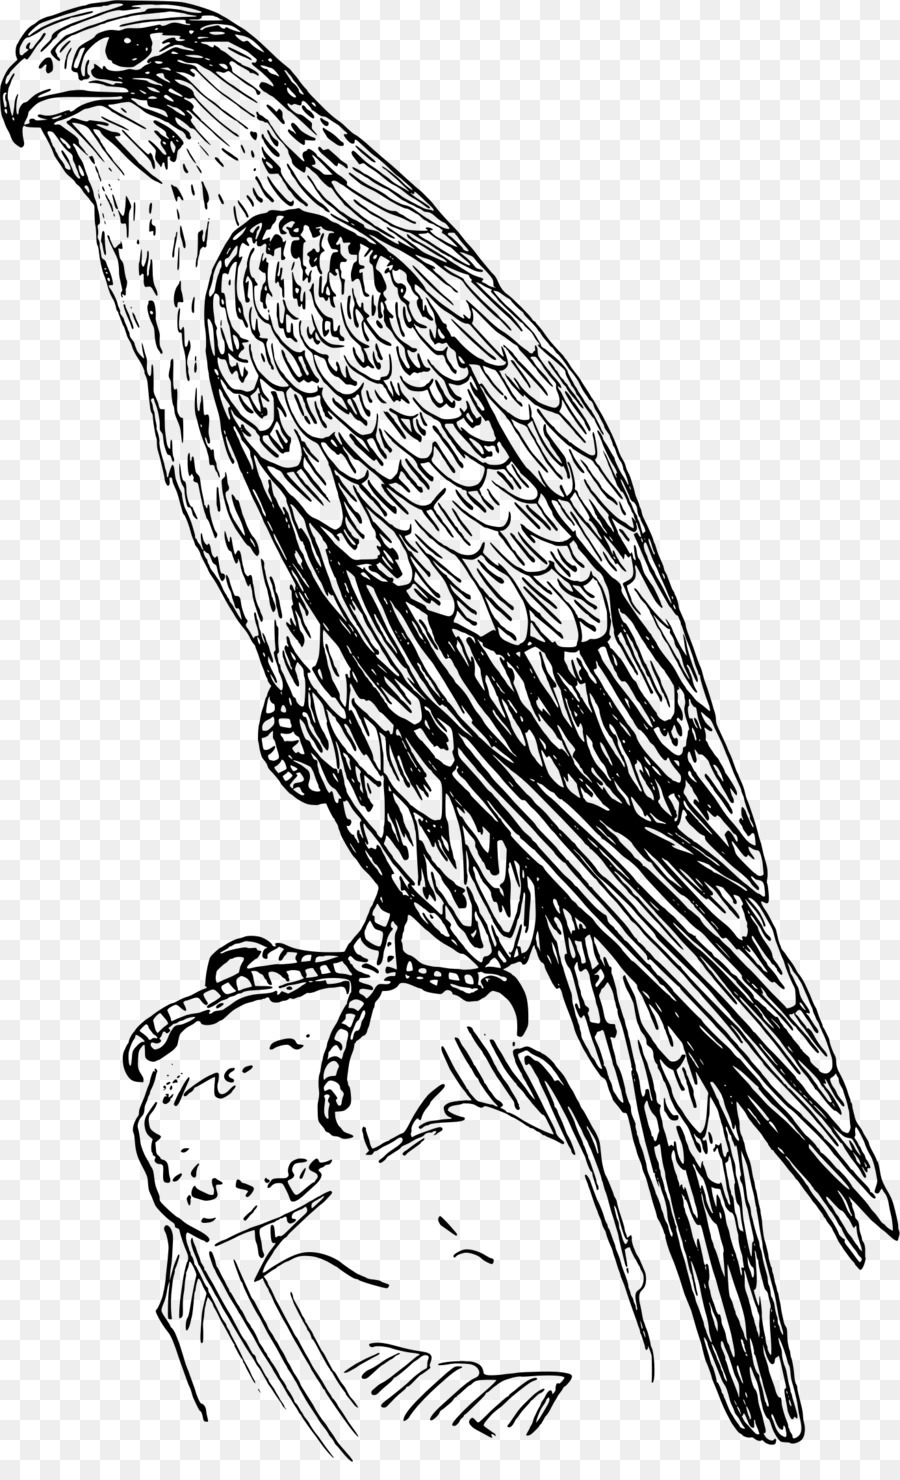 Peregrine Falcon Drawing Clip Art